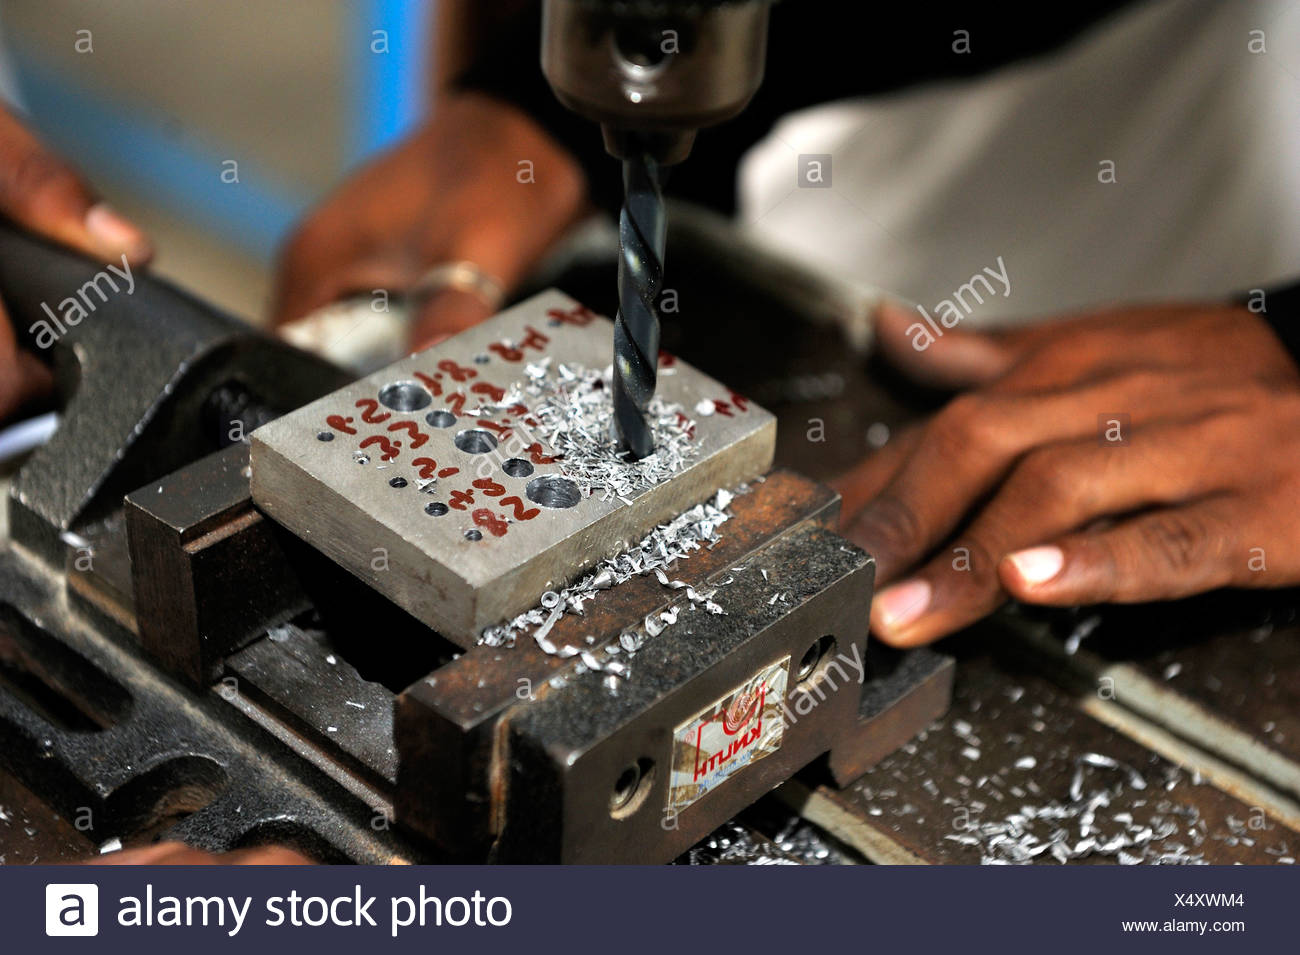 Vocational training as a metalworker, vocational student drilling different size holes in a steel ingot, Youhanabad, Lahore - Stock Image